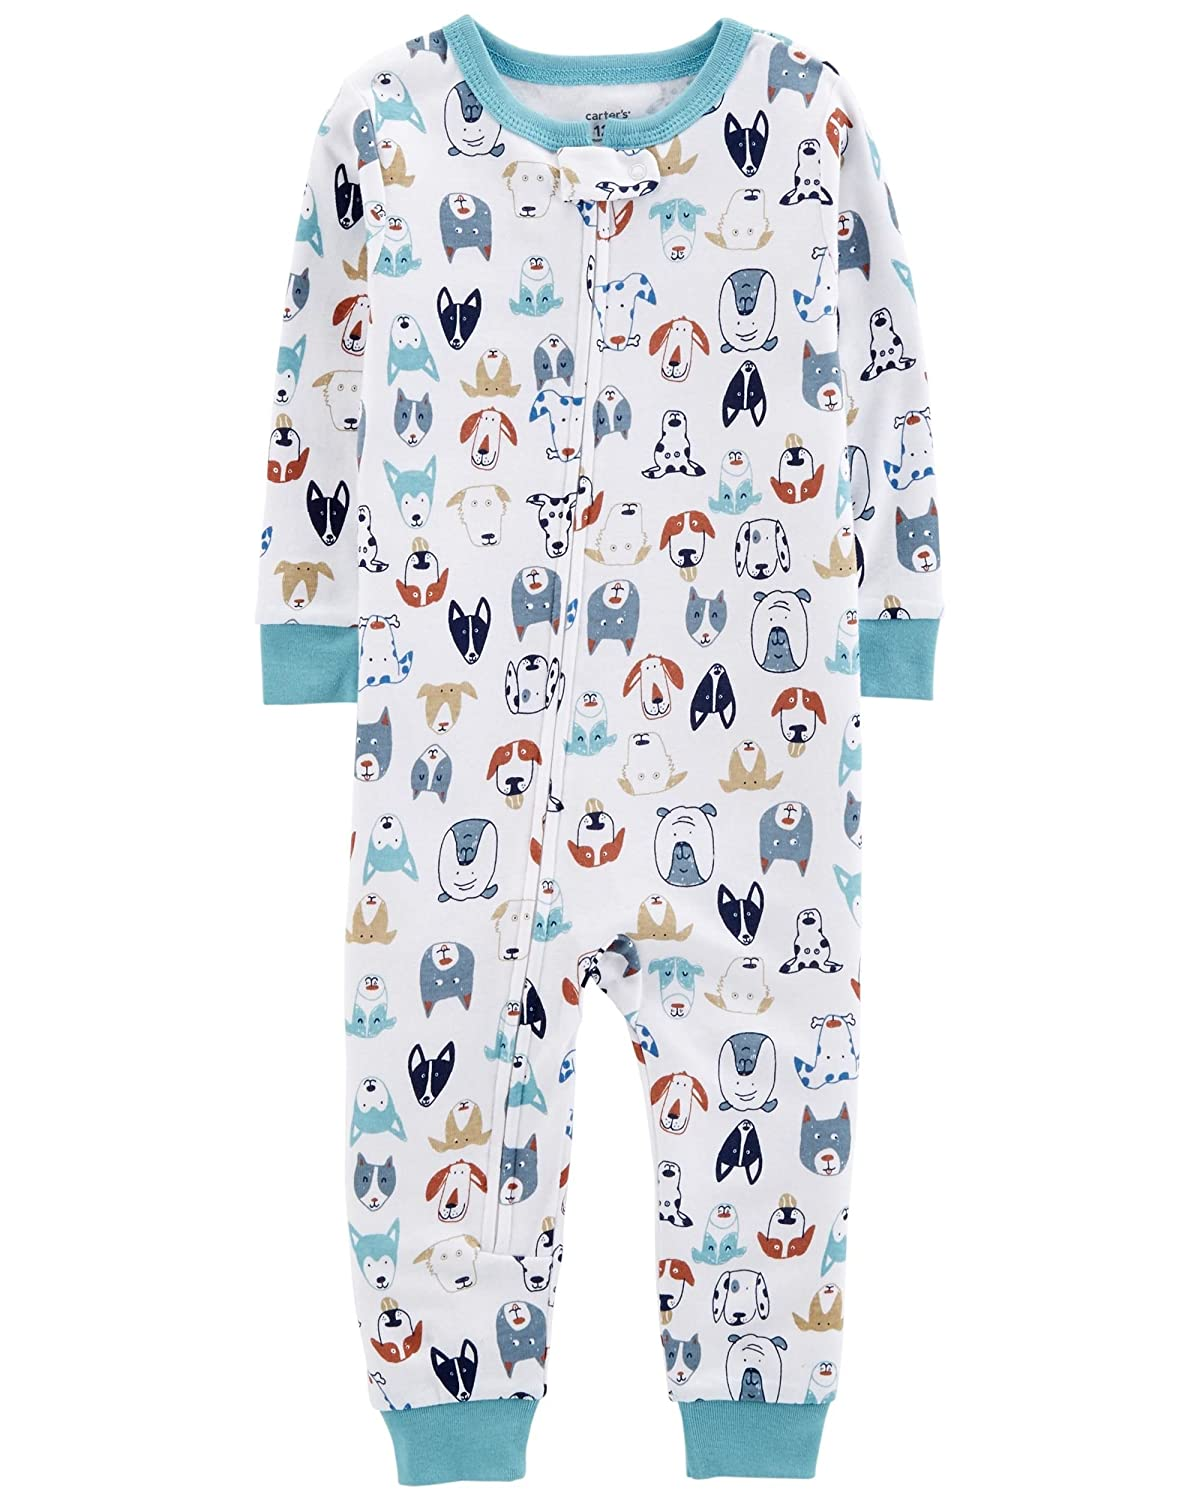 Carter's Baby Boys' 1-Piece Pajamas Carter' s P000515913